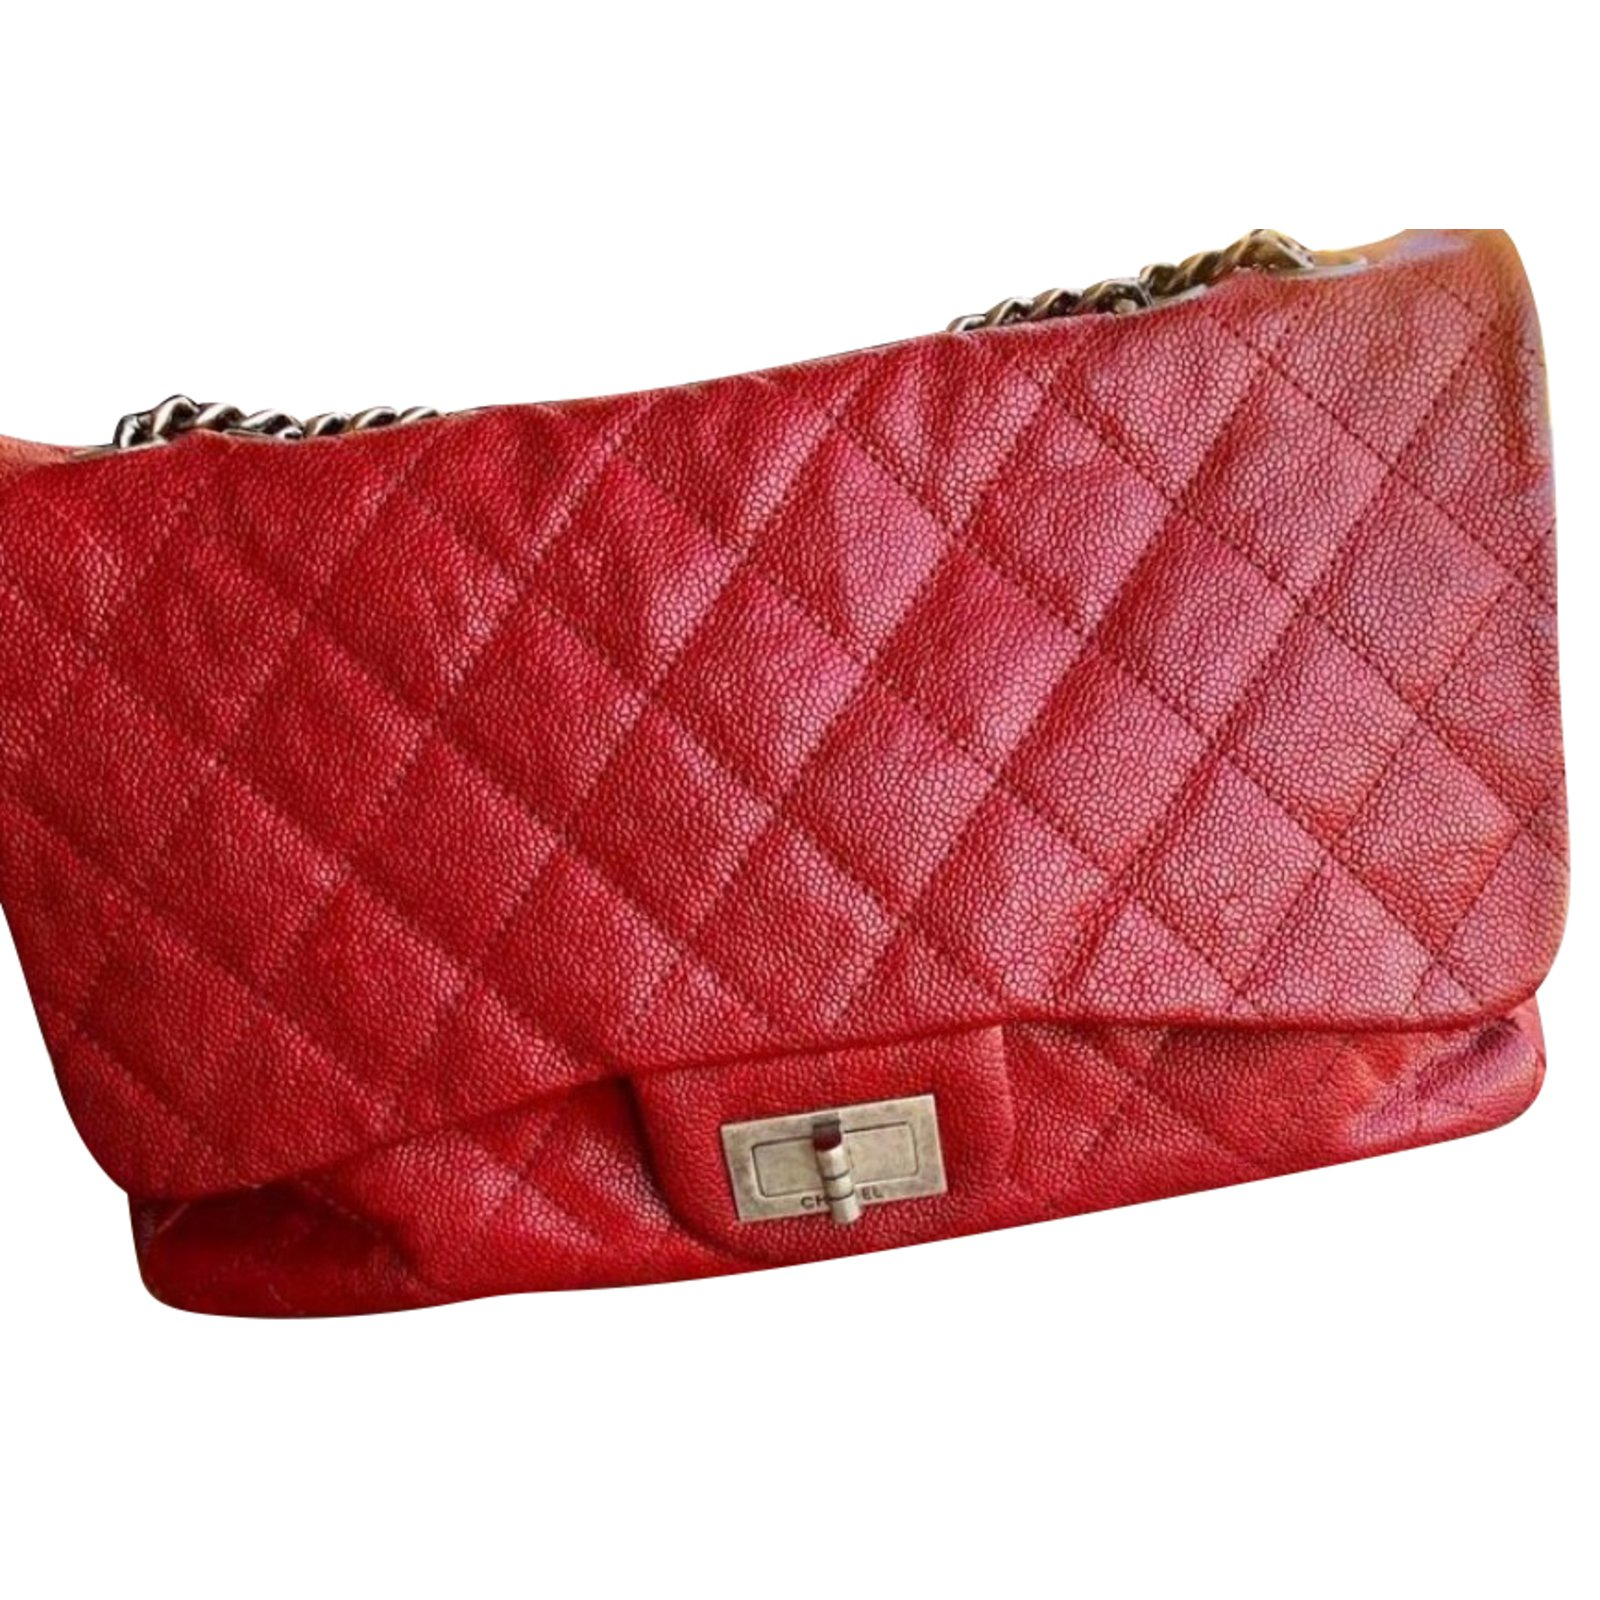 5e1619320759 Chanel 2.55 Handbags Leather Red ref.77272 - Joli Closet